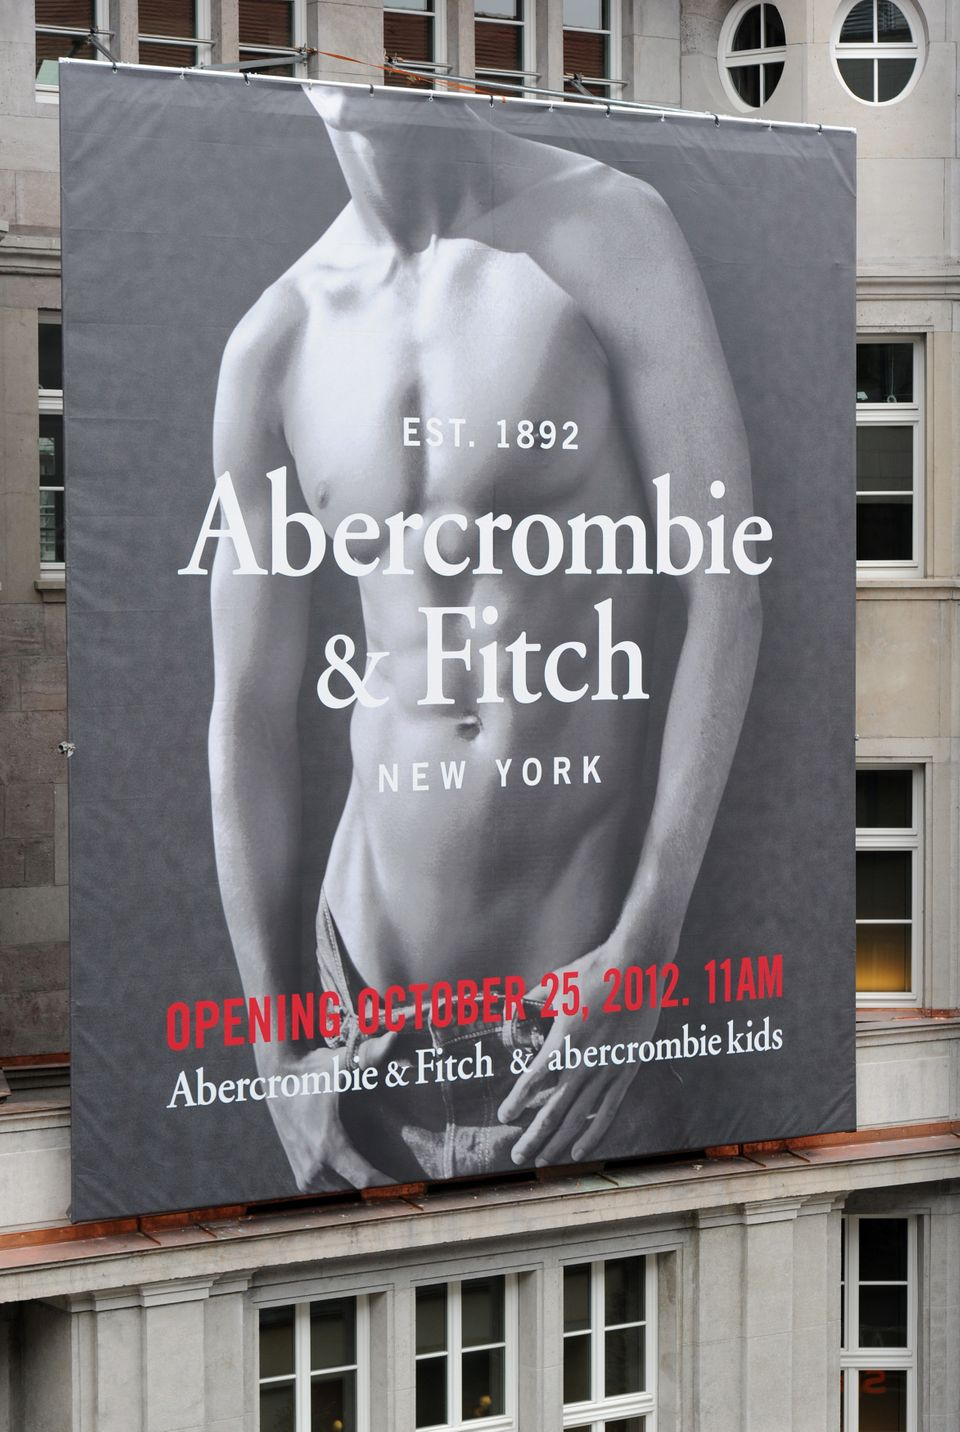 Abercrombie & Fitch first announced its plans to close 180 stores by 2015 more than two years ago. In its most recent quarter